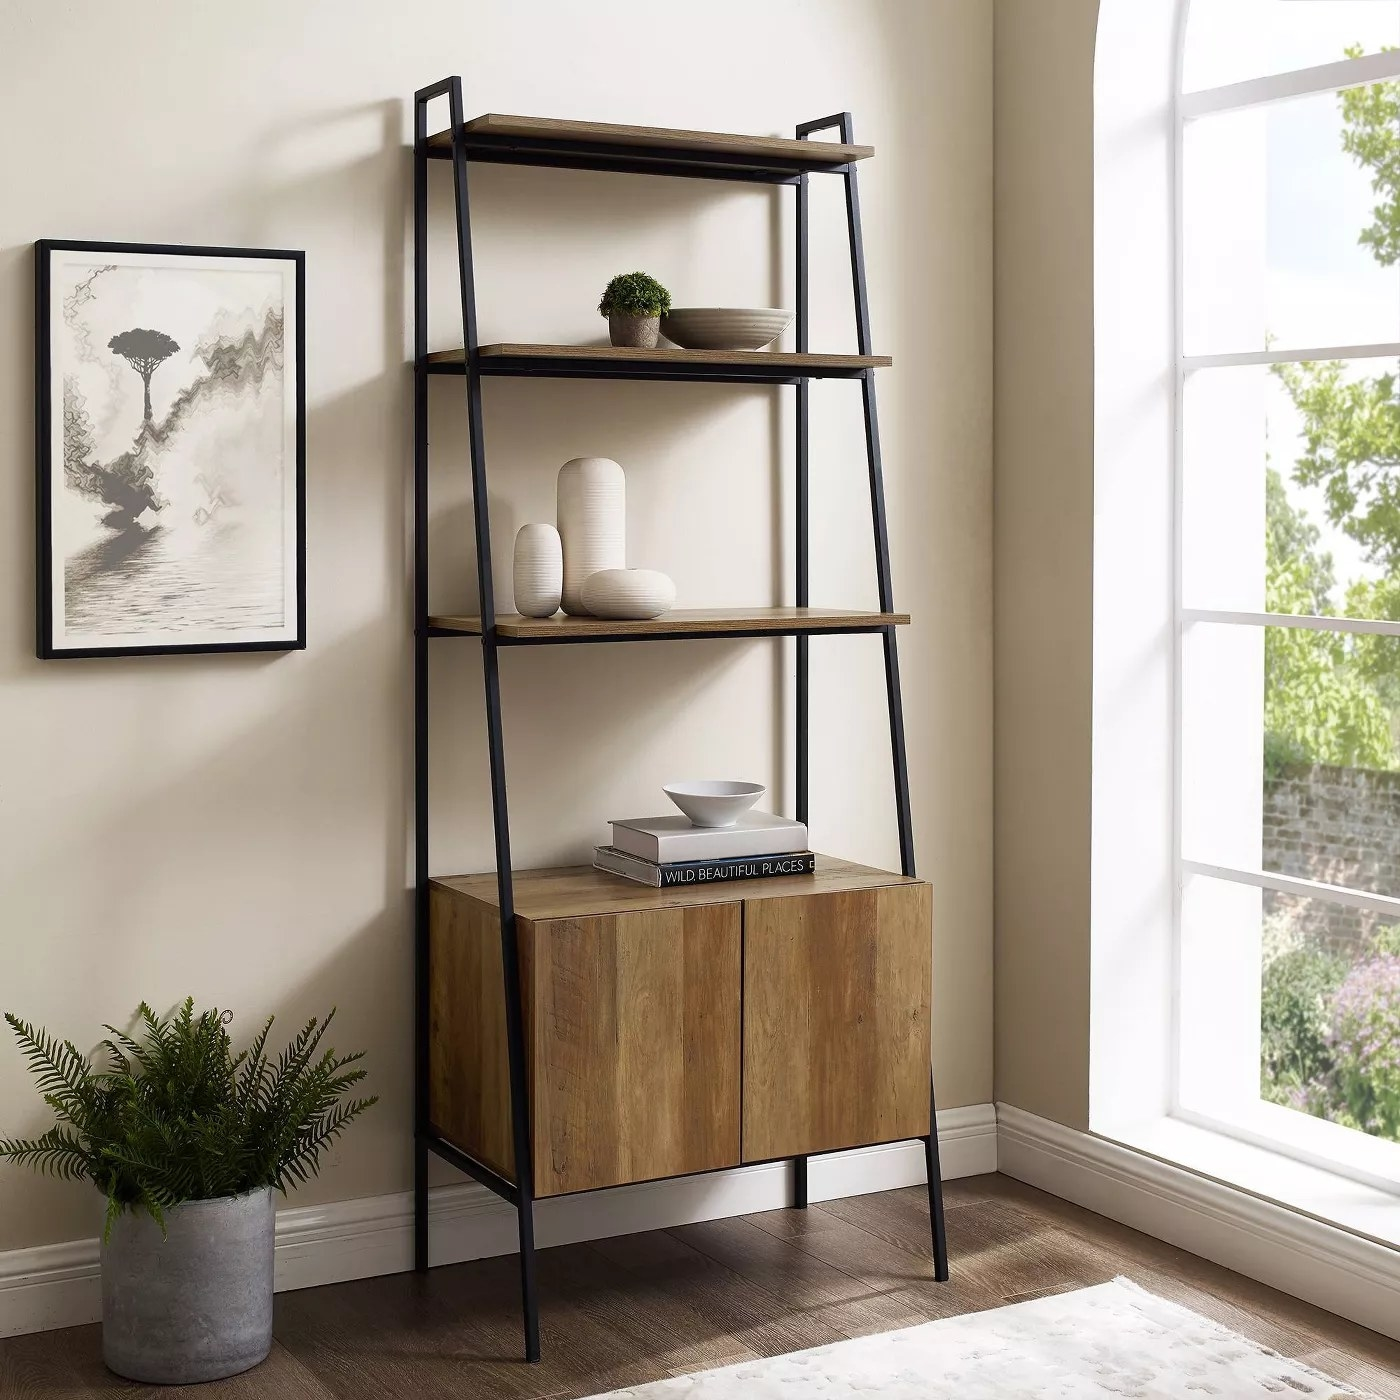 The wooden bookshelf with black railings, three shelves, and a large cabinet